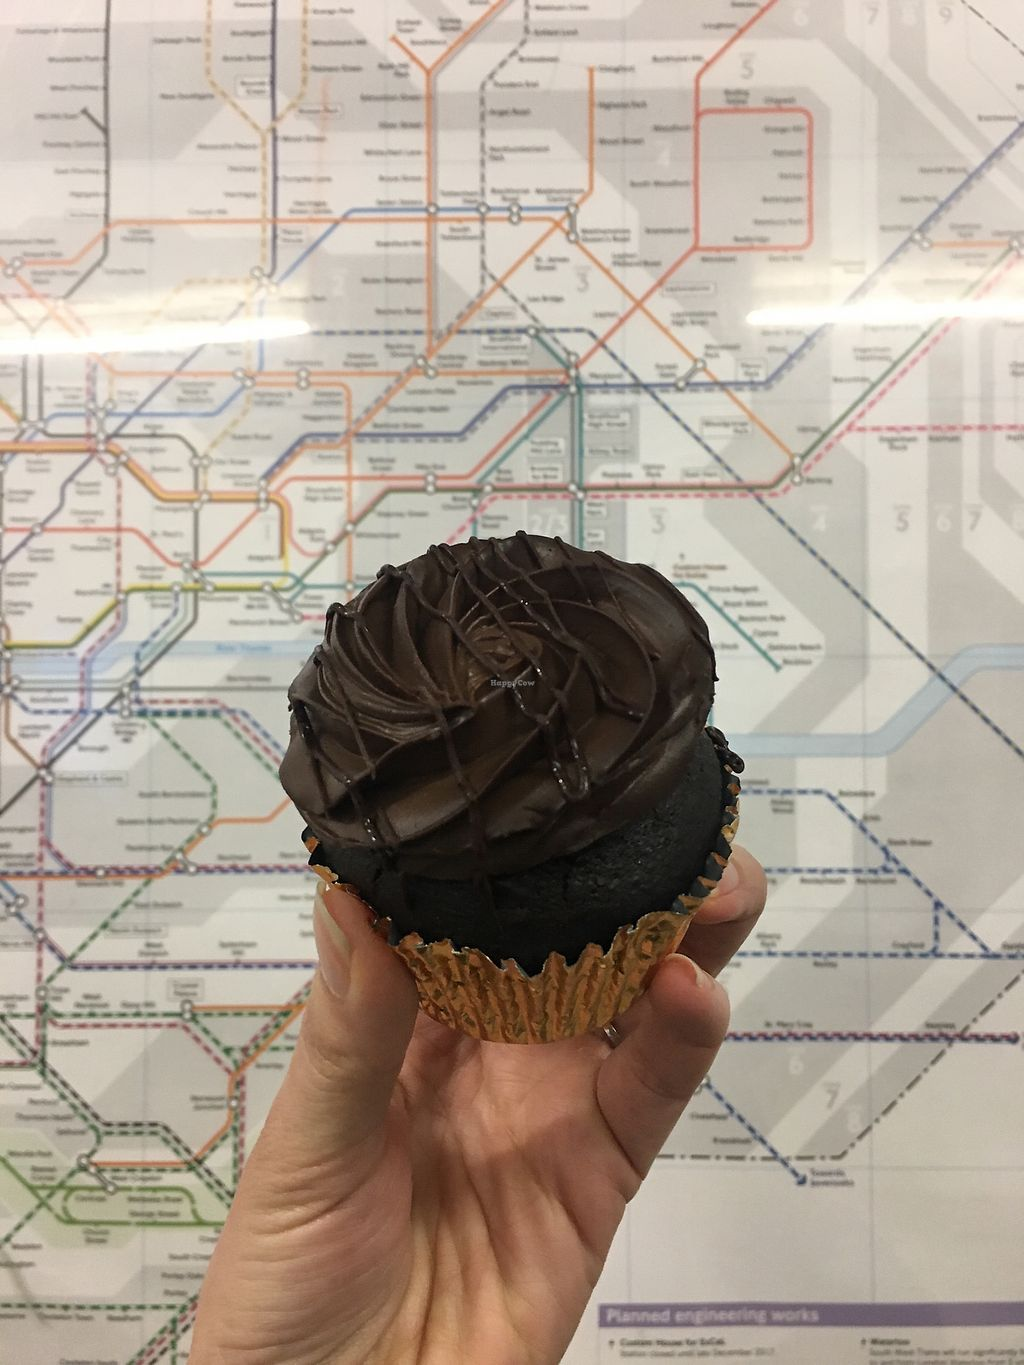 """Photo of Lola's Cupcakes  by <a href=""""/members/profile/natalieabad9"""">natalieabad9</a> <br/>Vegan chocolate cupcake  <br/> January 23, 2018  - <a href='/contact/abuse/image/86617/350162'>Report</a>"""